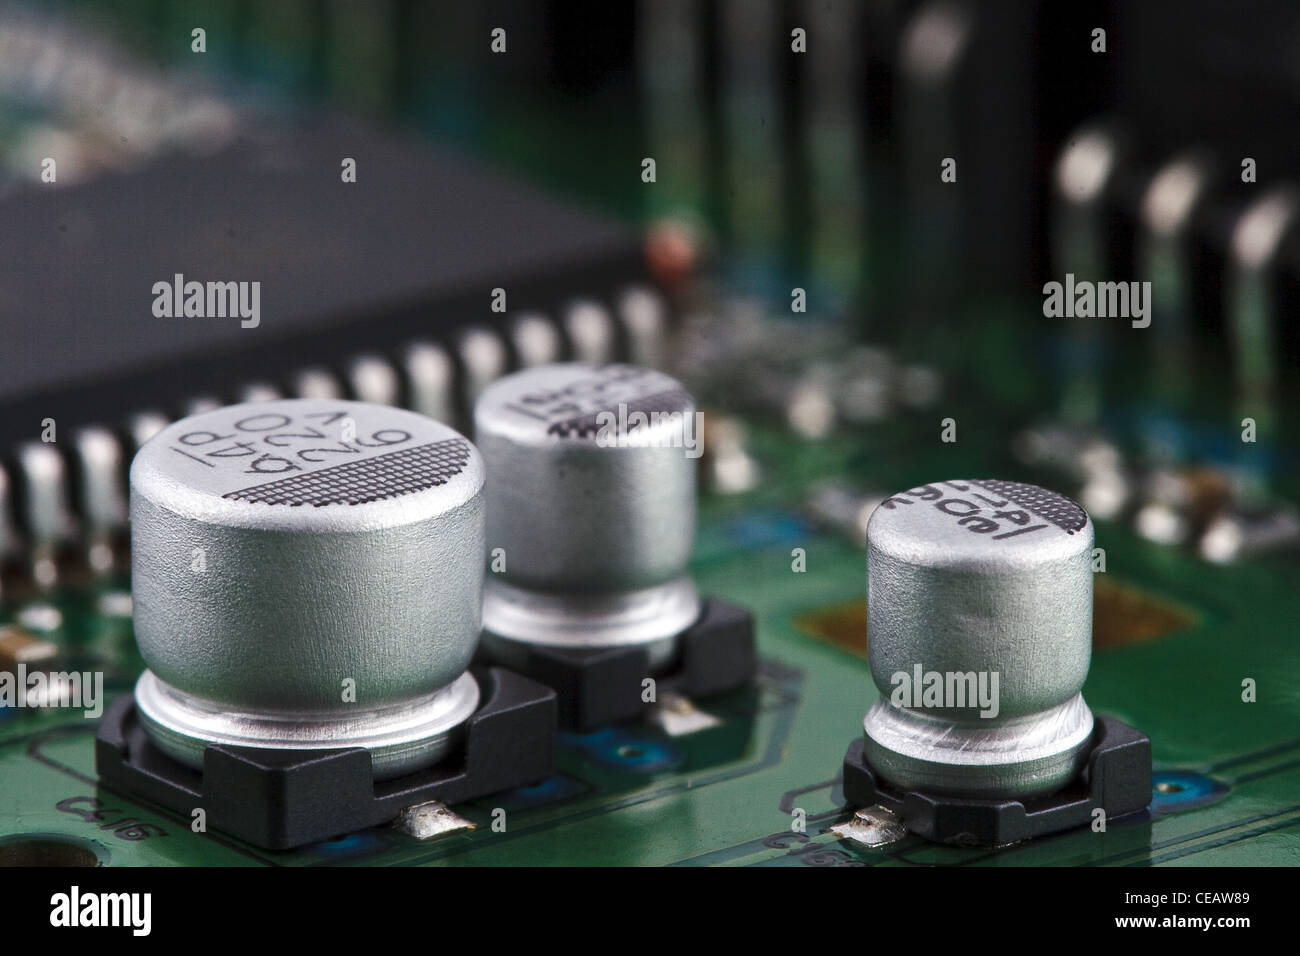 Capacitors on circuit board - Stock Image